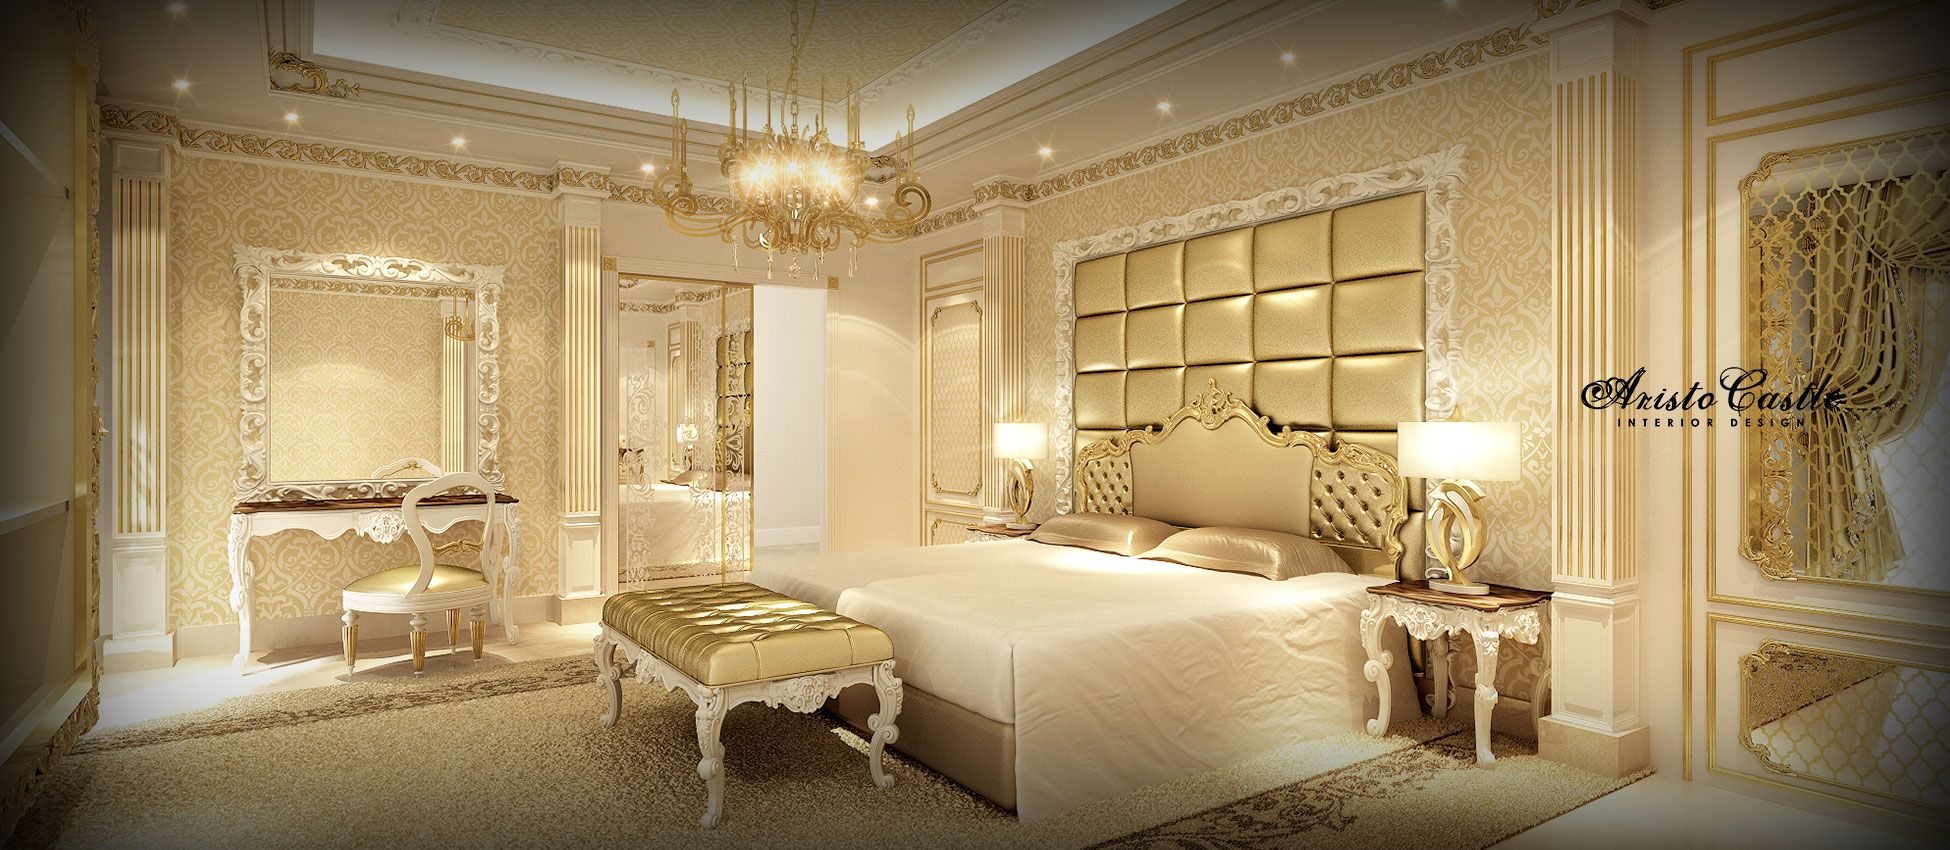 Dubai luxury interior design luxury master bedroom for Luxury hotel room interior design